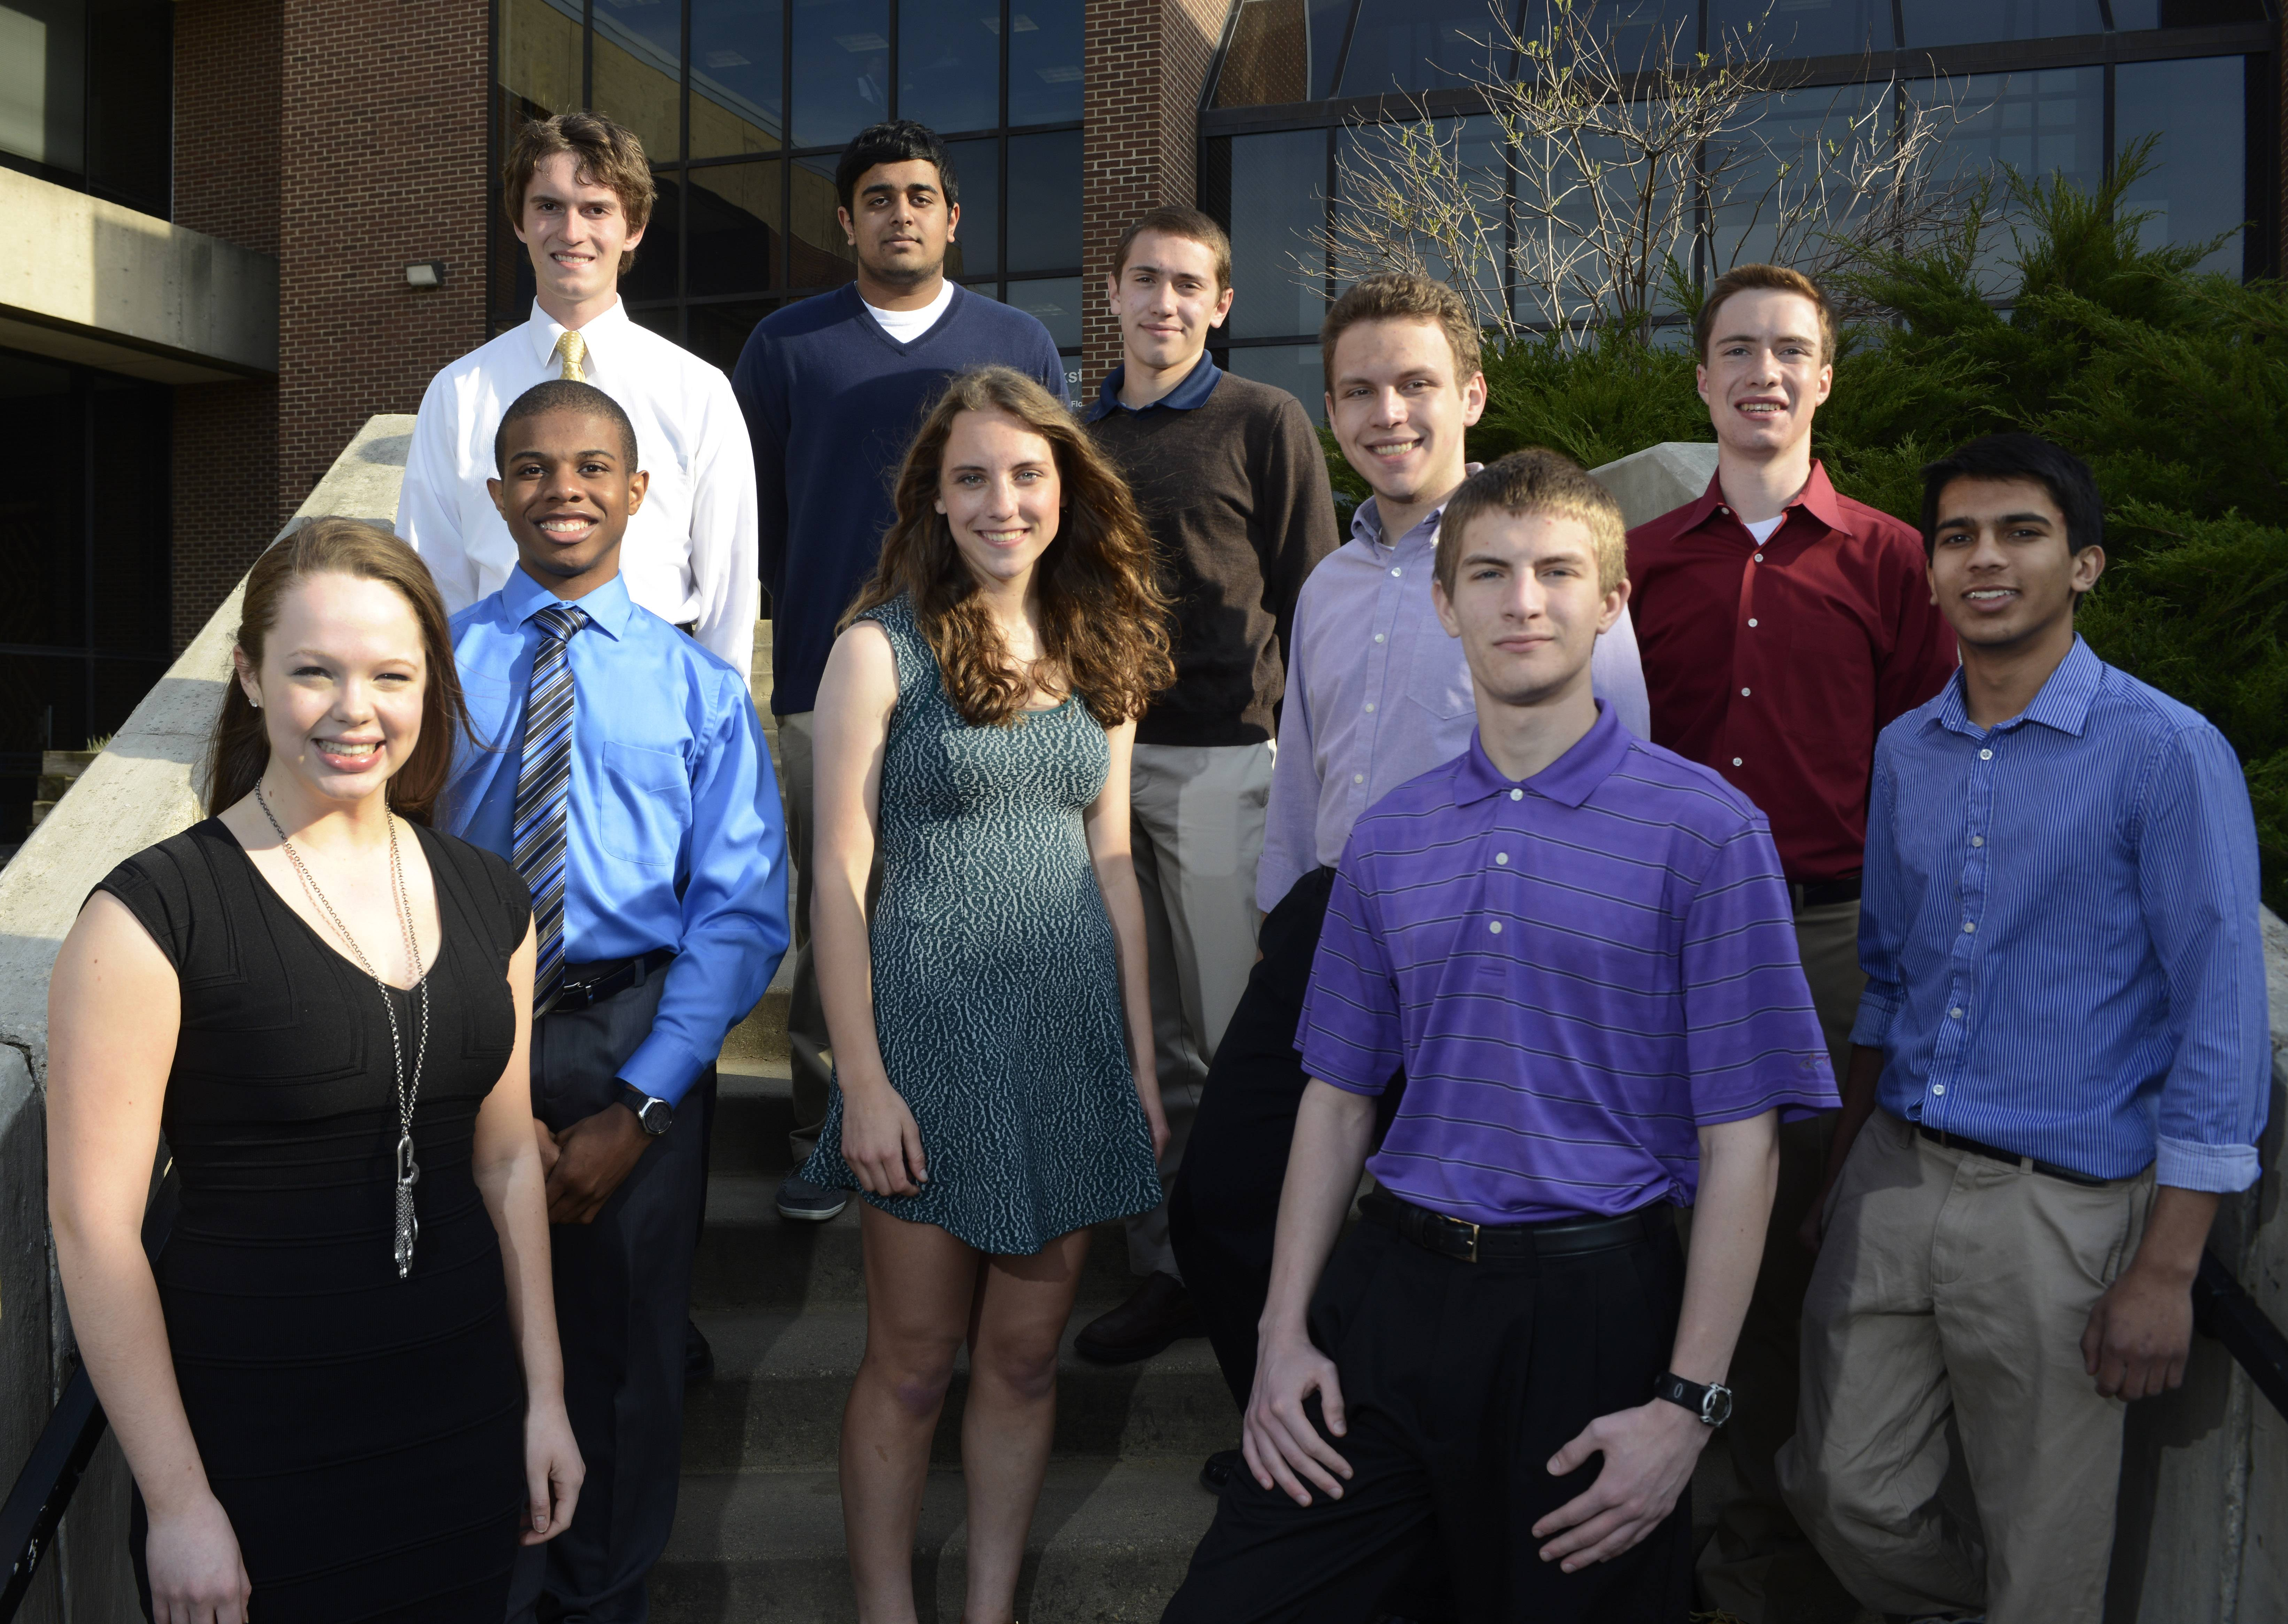 The 2014 Northwest Suburban Academic Team gathers at Harper College. Front row, from left: Emma Heckelsmiller, Palatine High School; Trent Cwiok, Elk Grove High School; and Sohum Chokshi, Conant. Middle row, from left: Paul Lewis, St. Viator, Mary Collins, Rolling Meadows High School; Robert Andrews, Fremd; and Tyler Harris, St. Viator. Back row, from left: Peter Kotecki, Buffalo Grove High School; Milan Patel, Hoffman Estates High School and Matthew Stadnicki, Hersey High School.